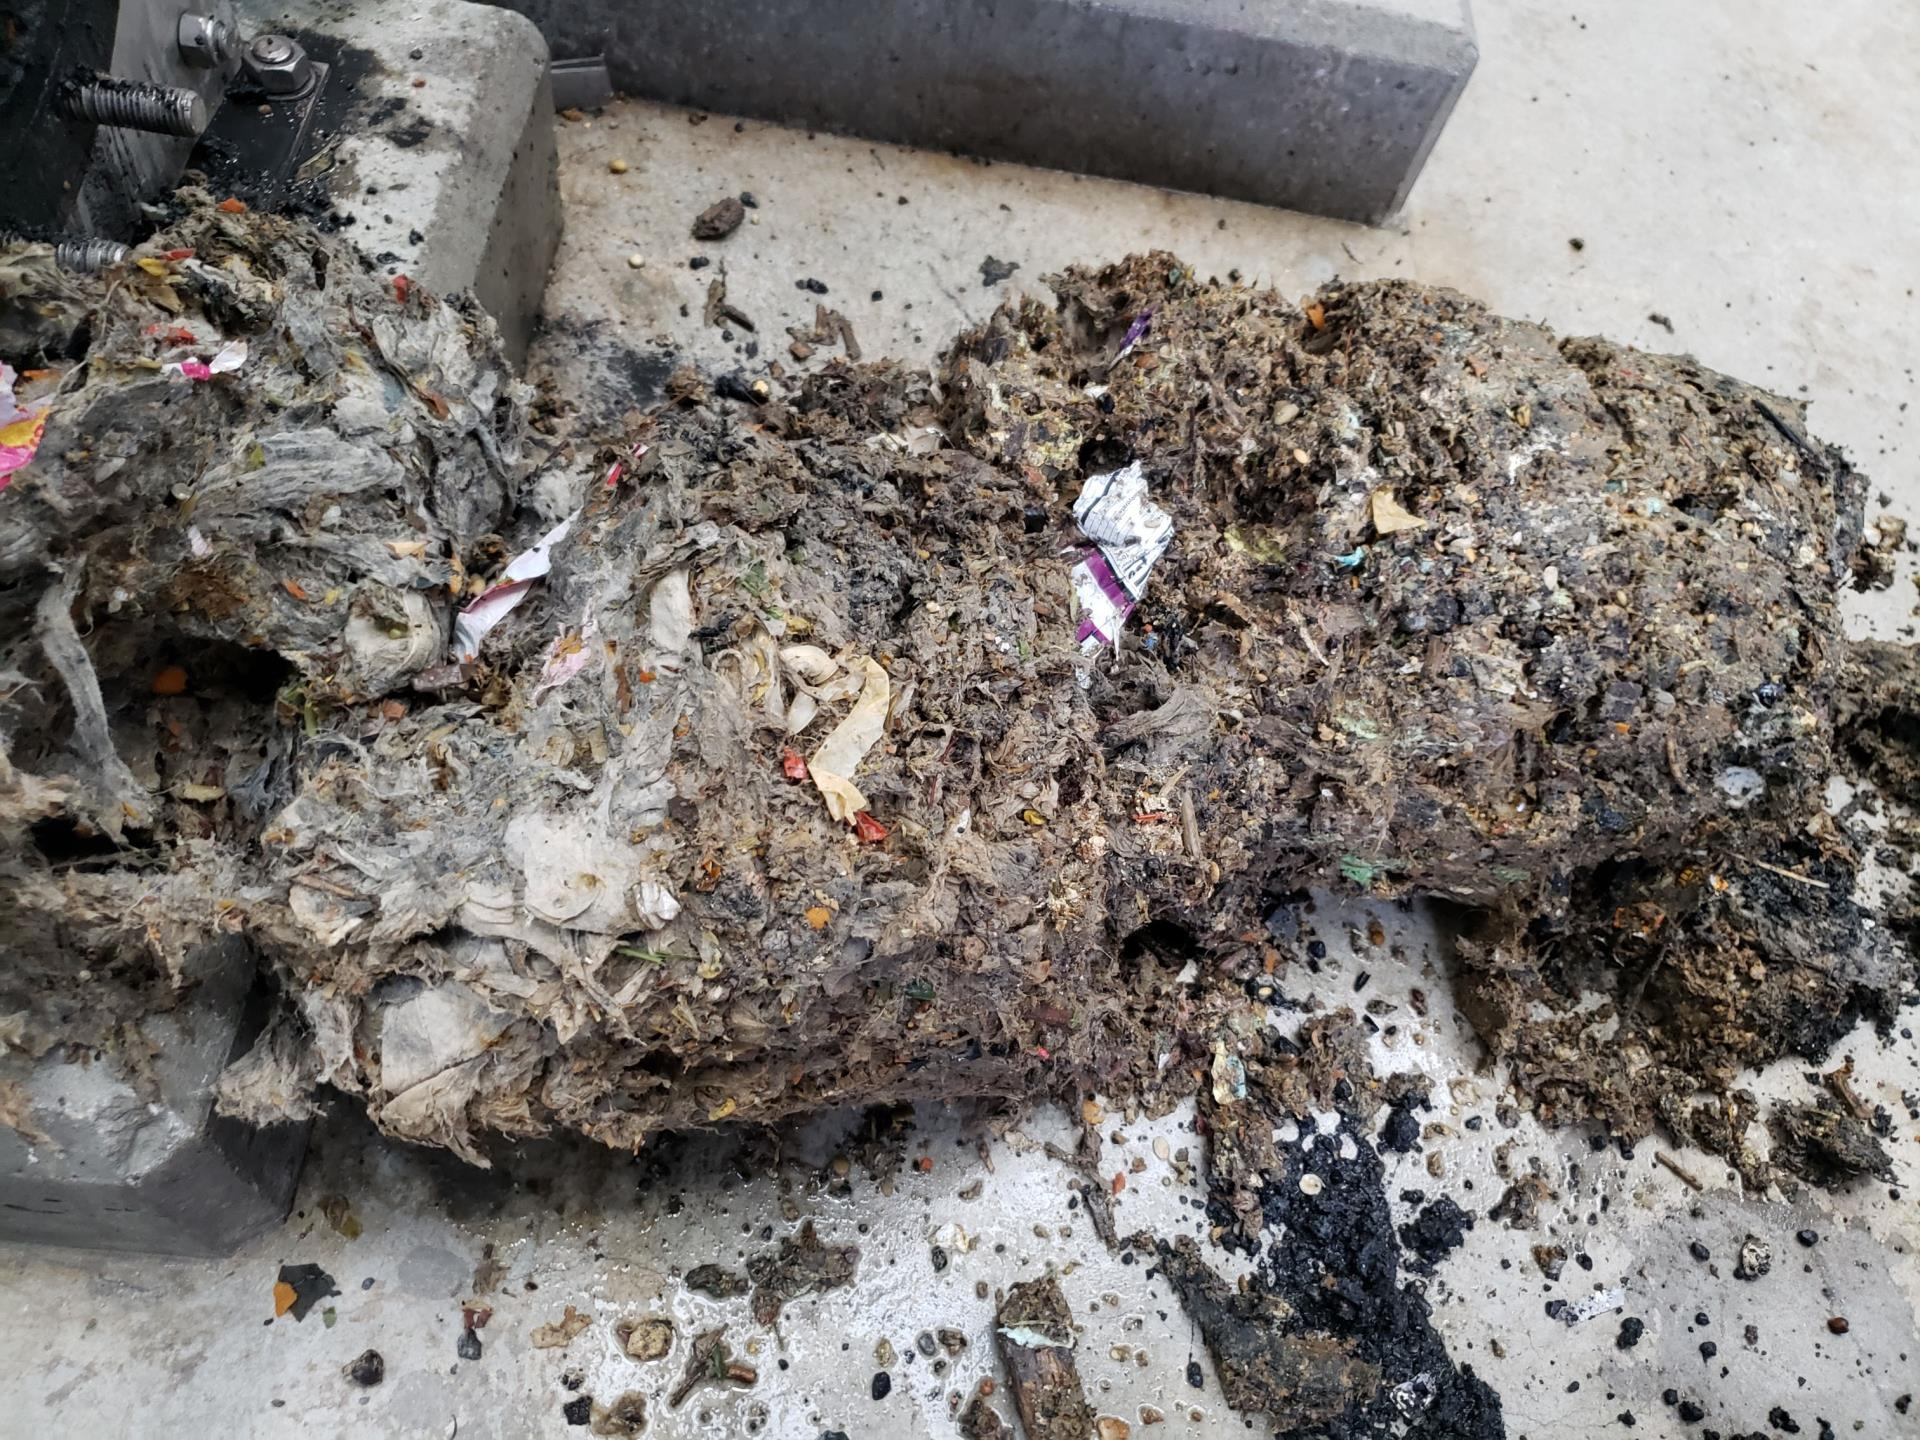 flushable wipes clogged pipe